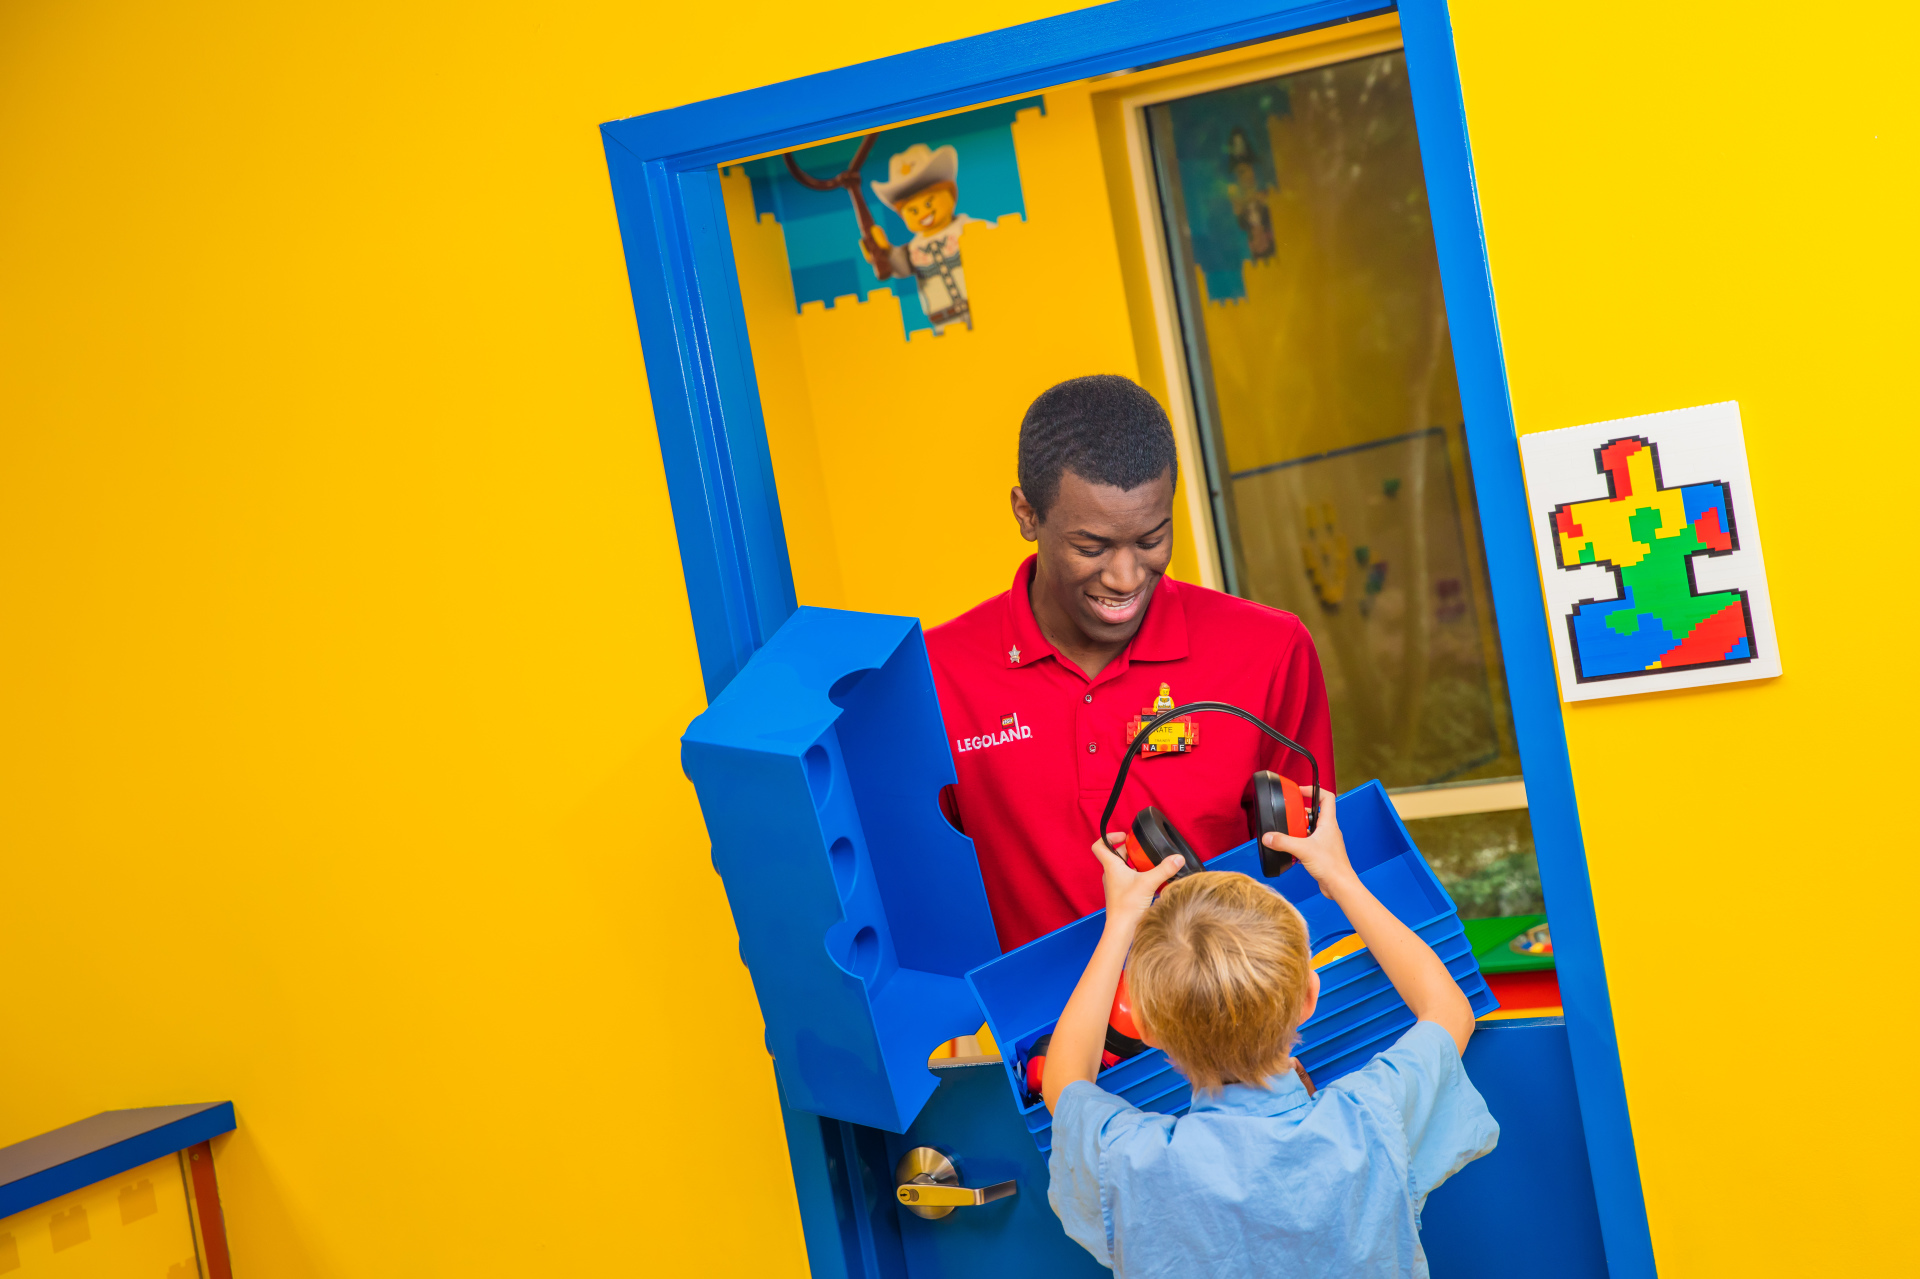 LEGOLAND Florida Resort Expands Efforts to Deliver Awesome Experiences for Guests with Physical and